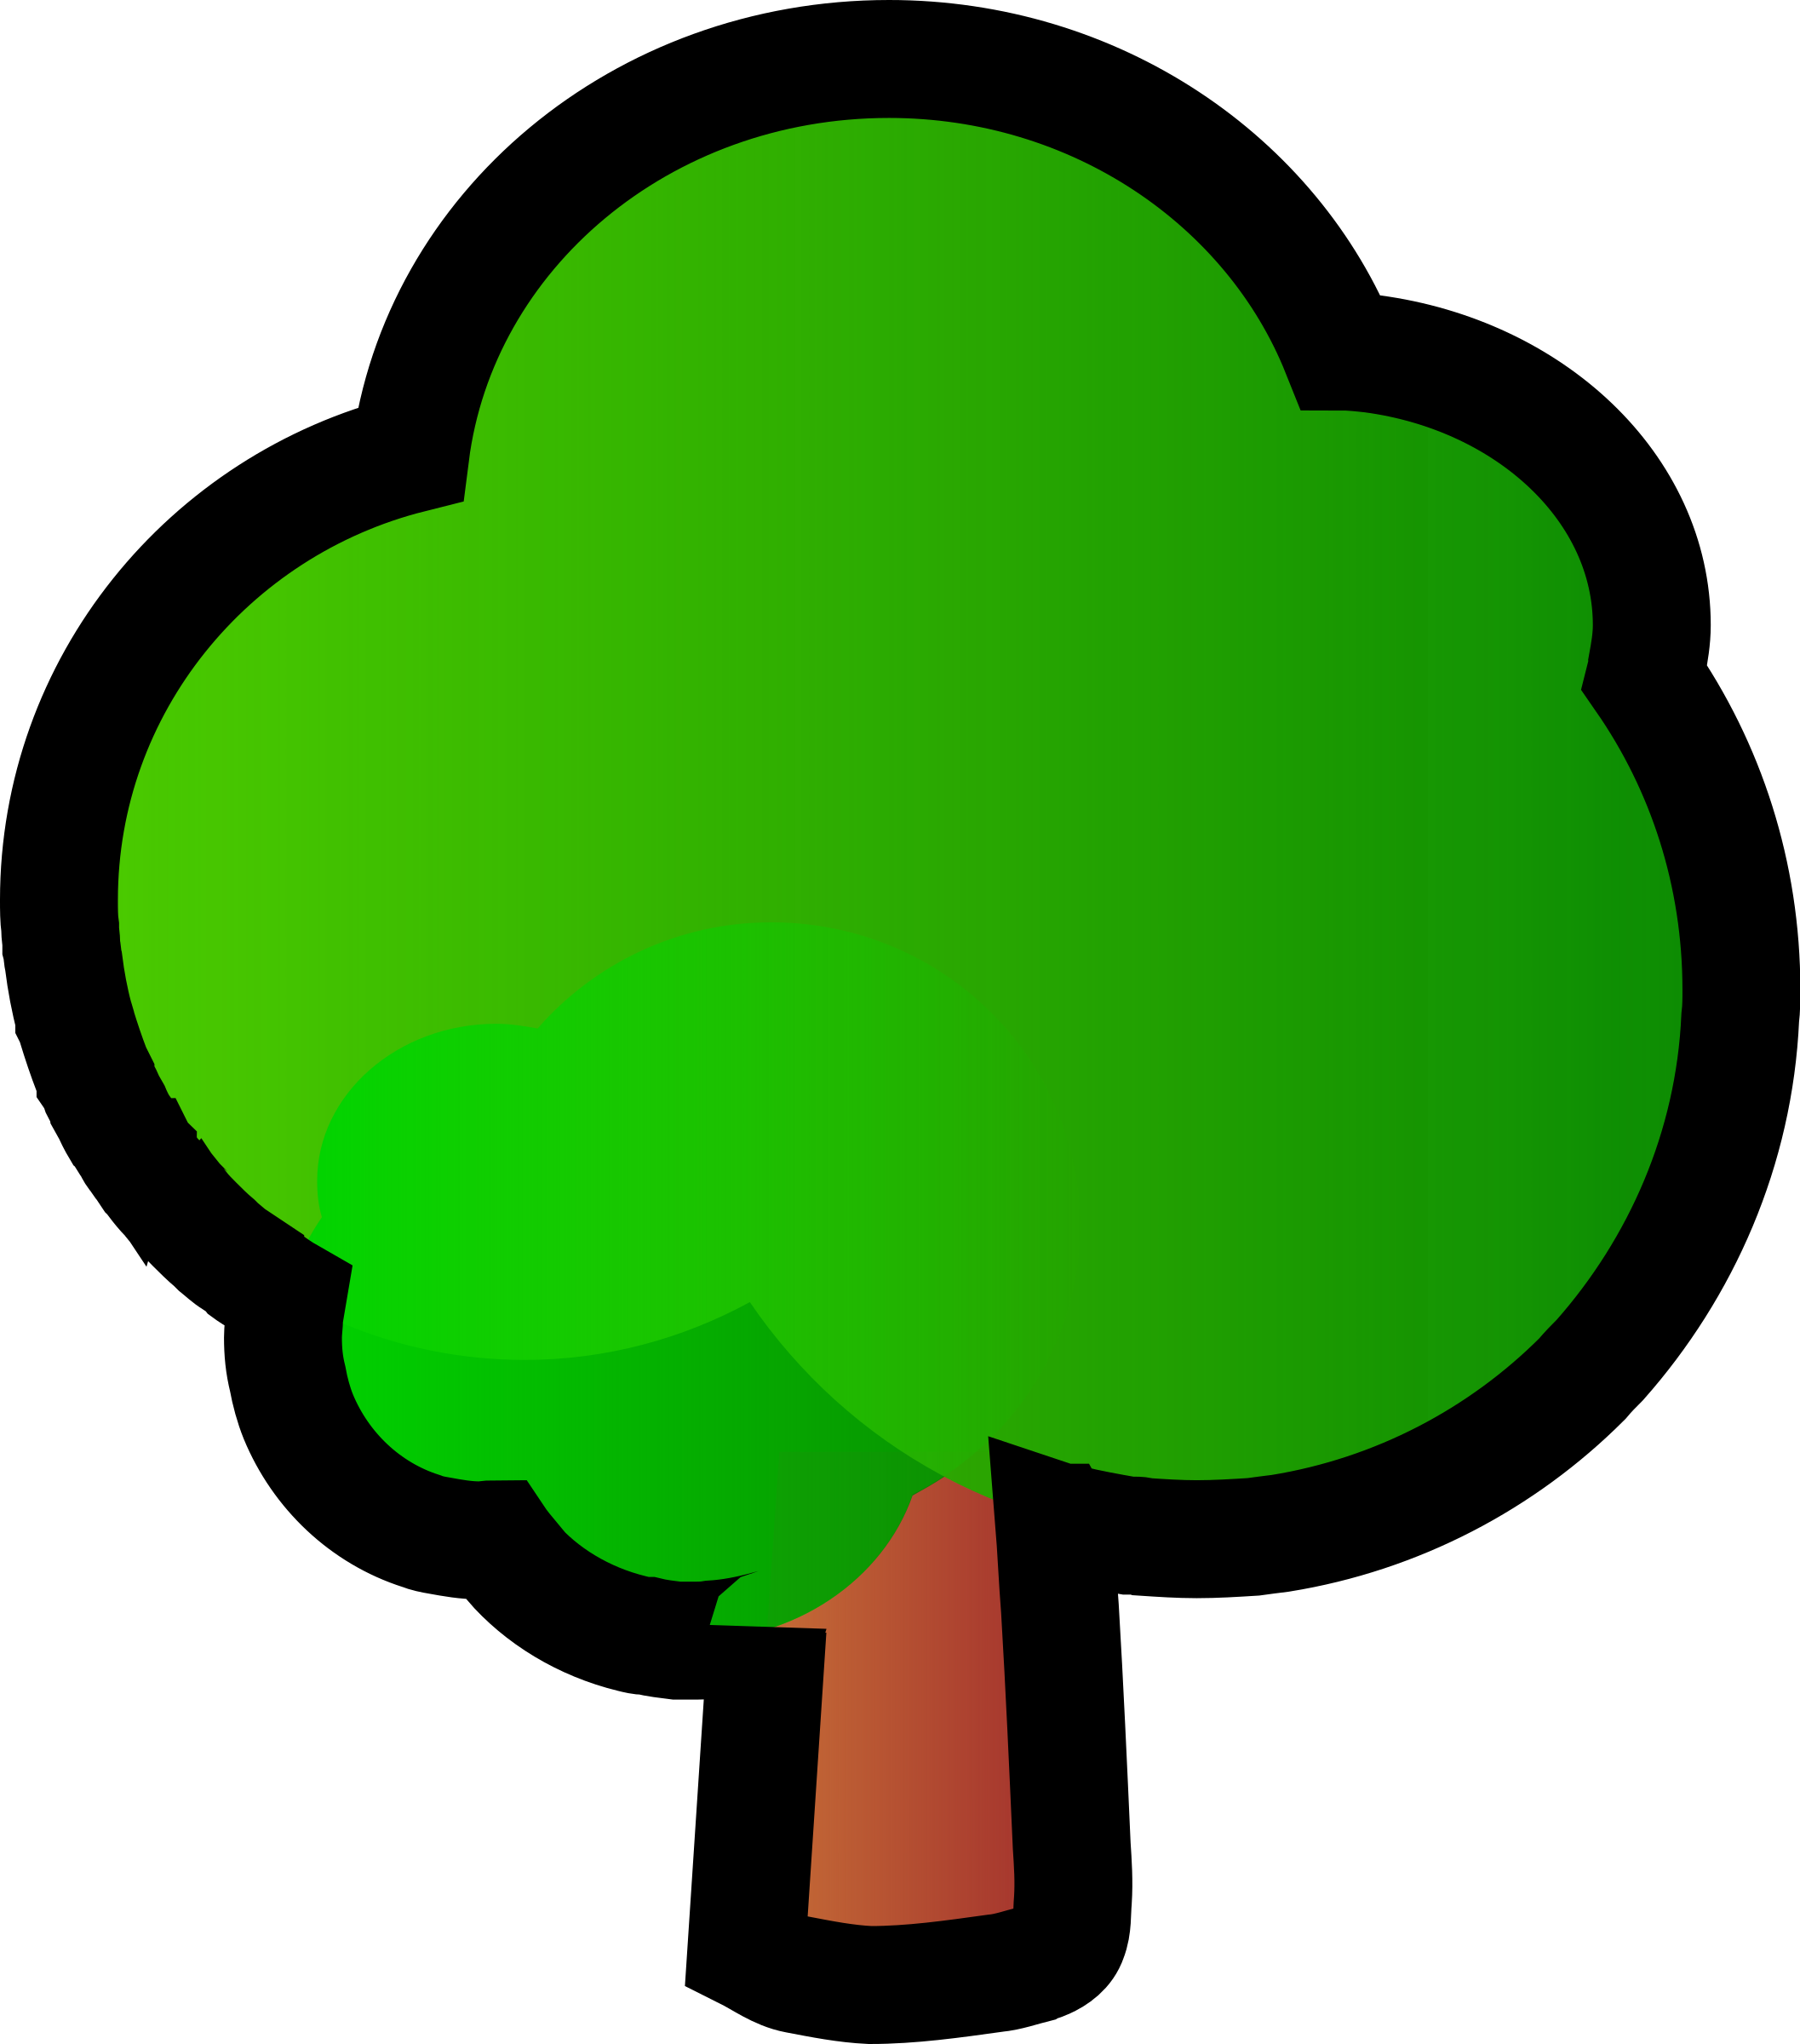 isometric tree by danza